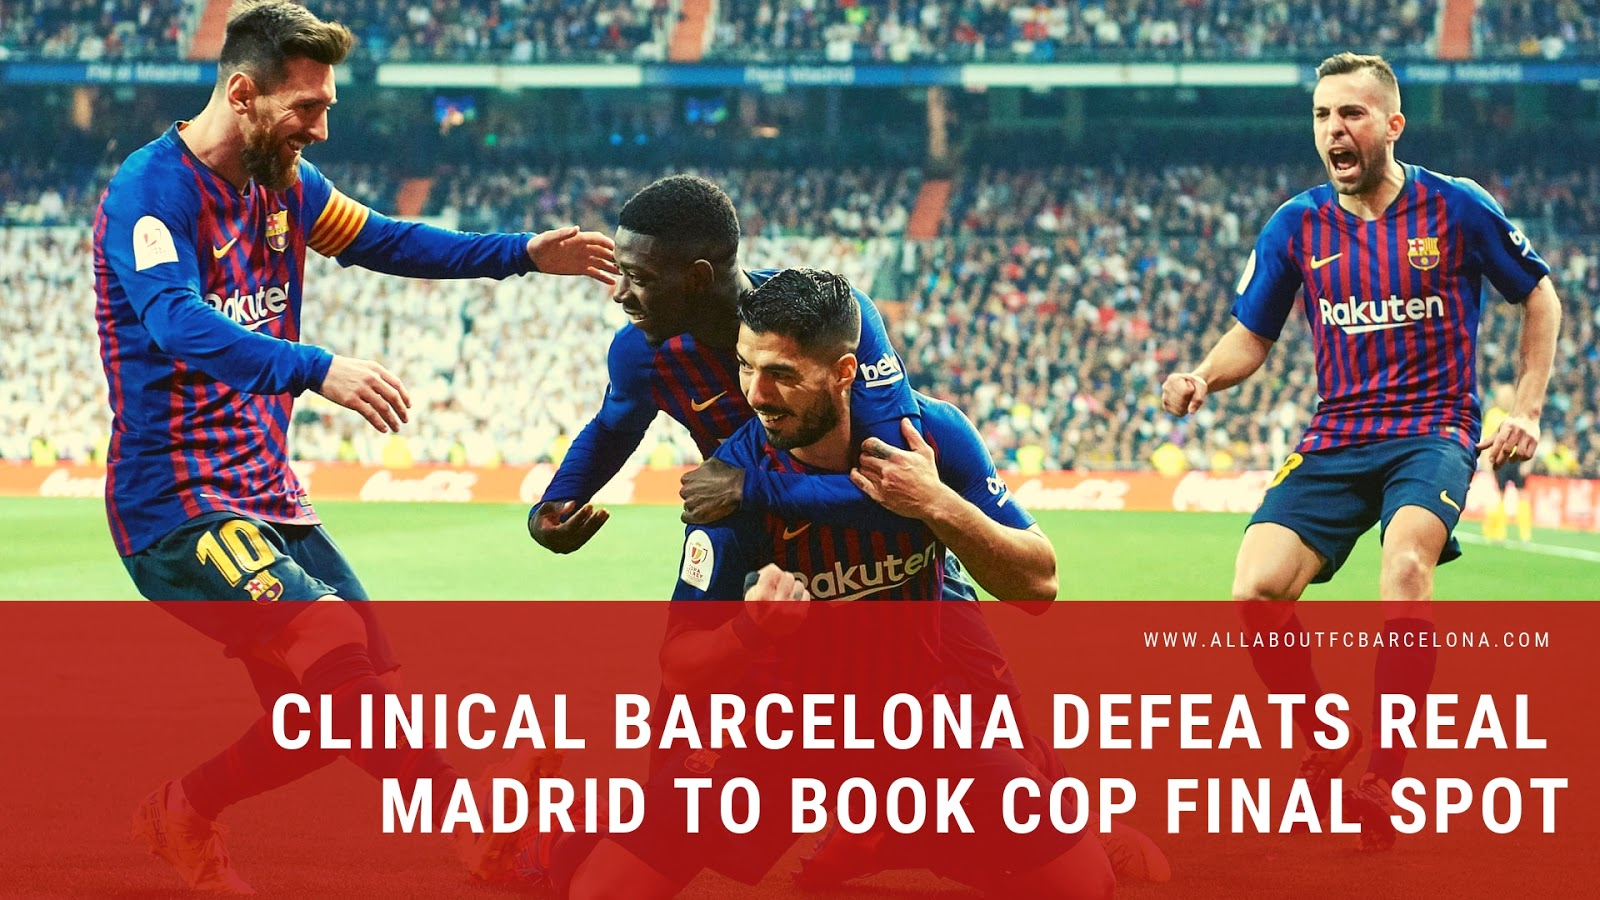 Clinical Barcelona makes the most of their Chances to Defeat Real Madrid